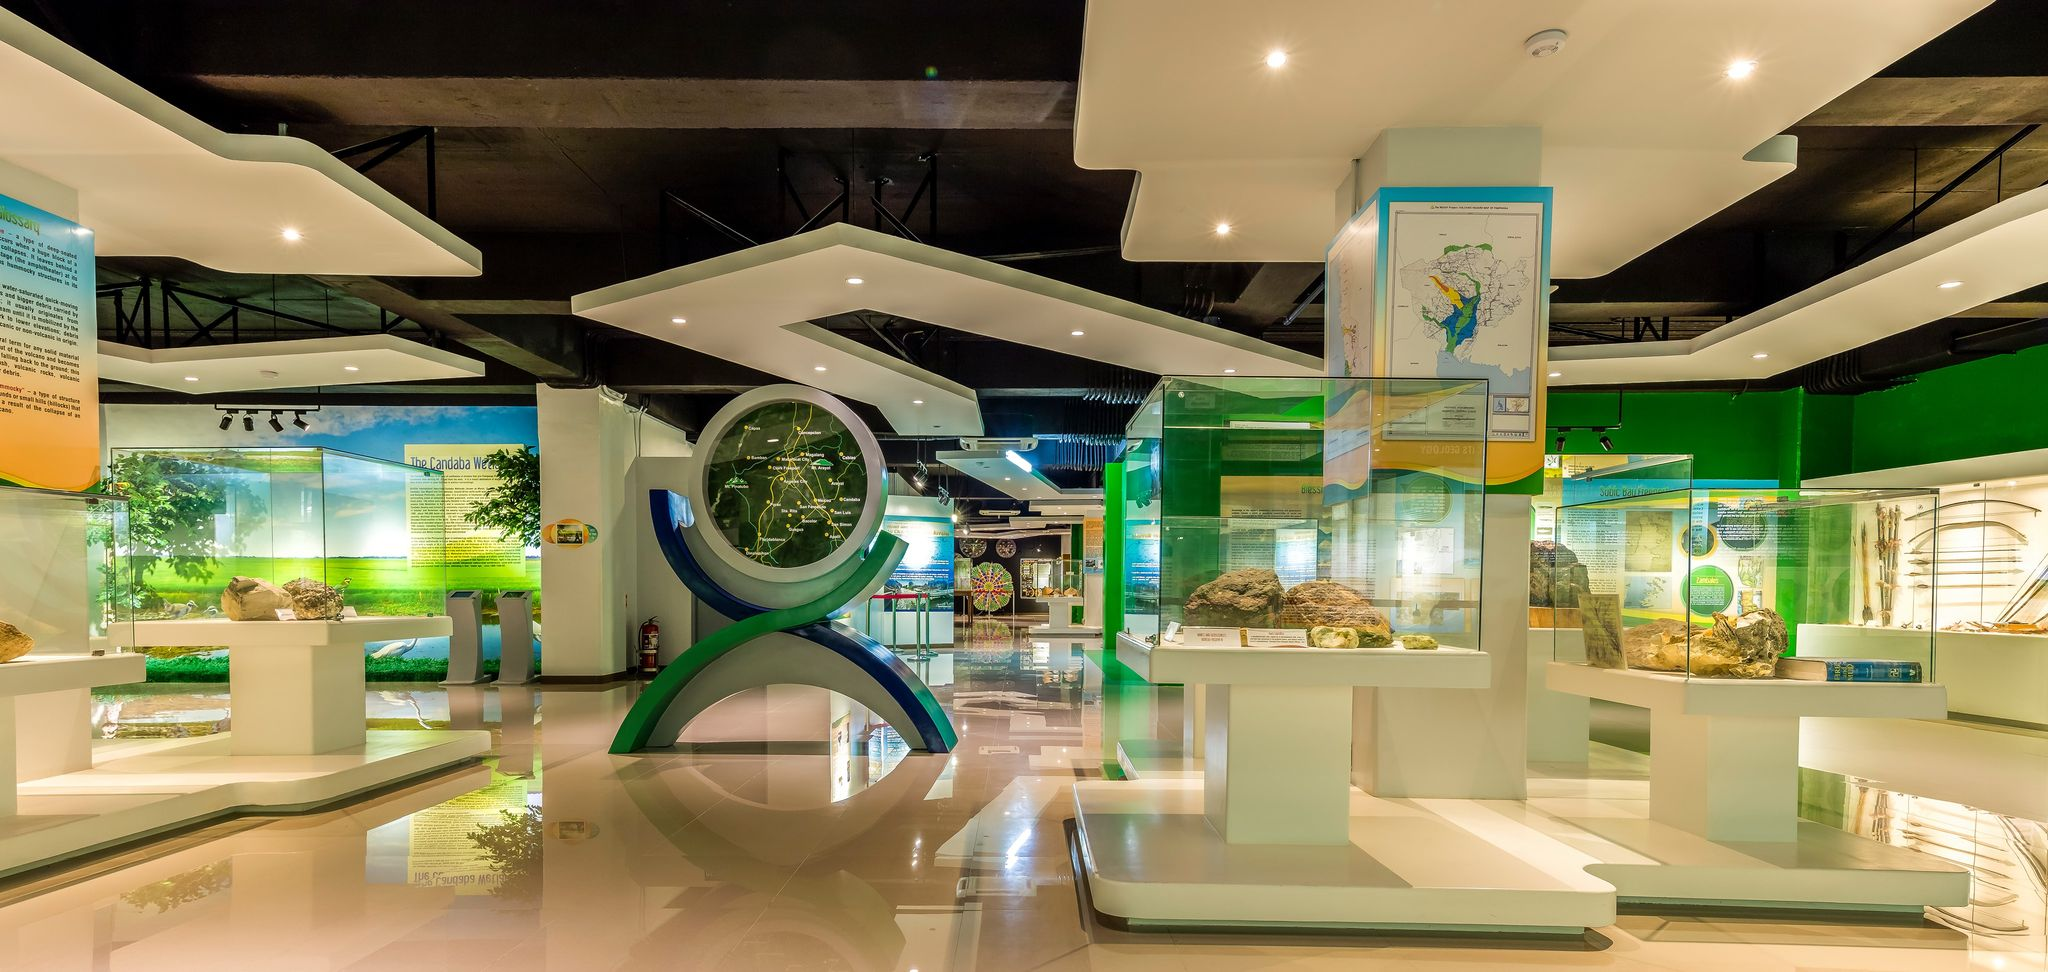 Clark Museum, 4D Theater to re-open on December 1 with health protocols